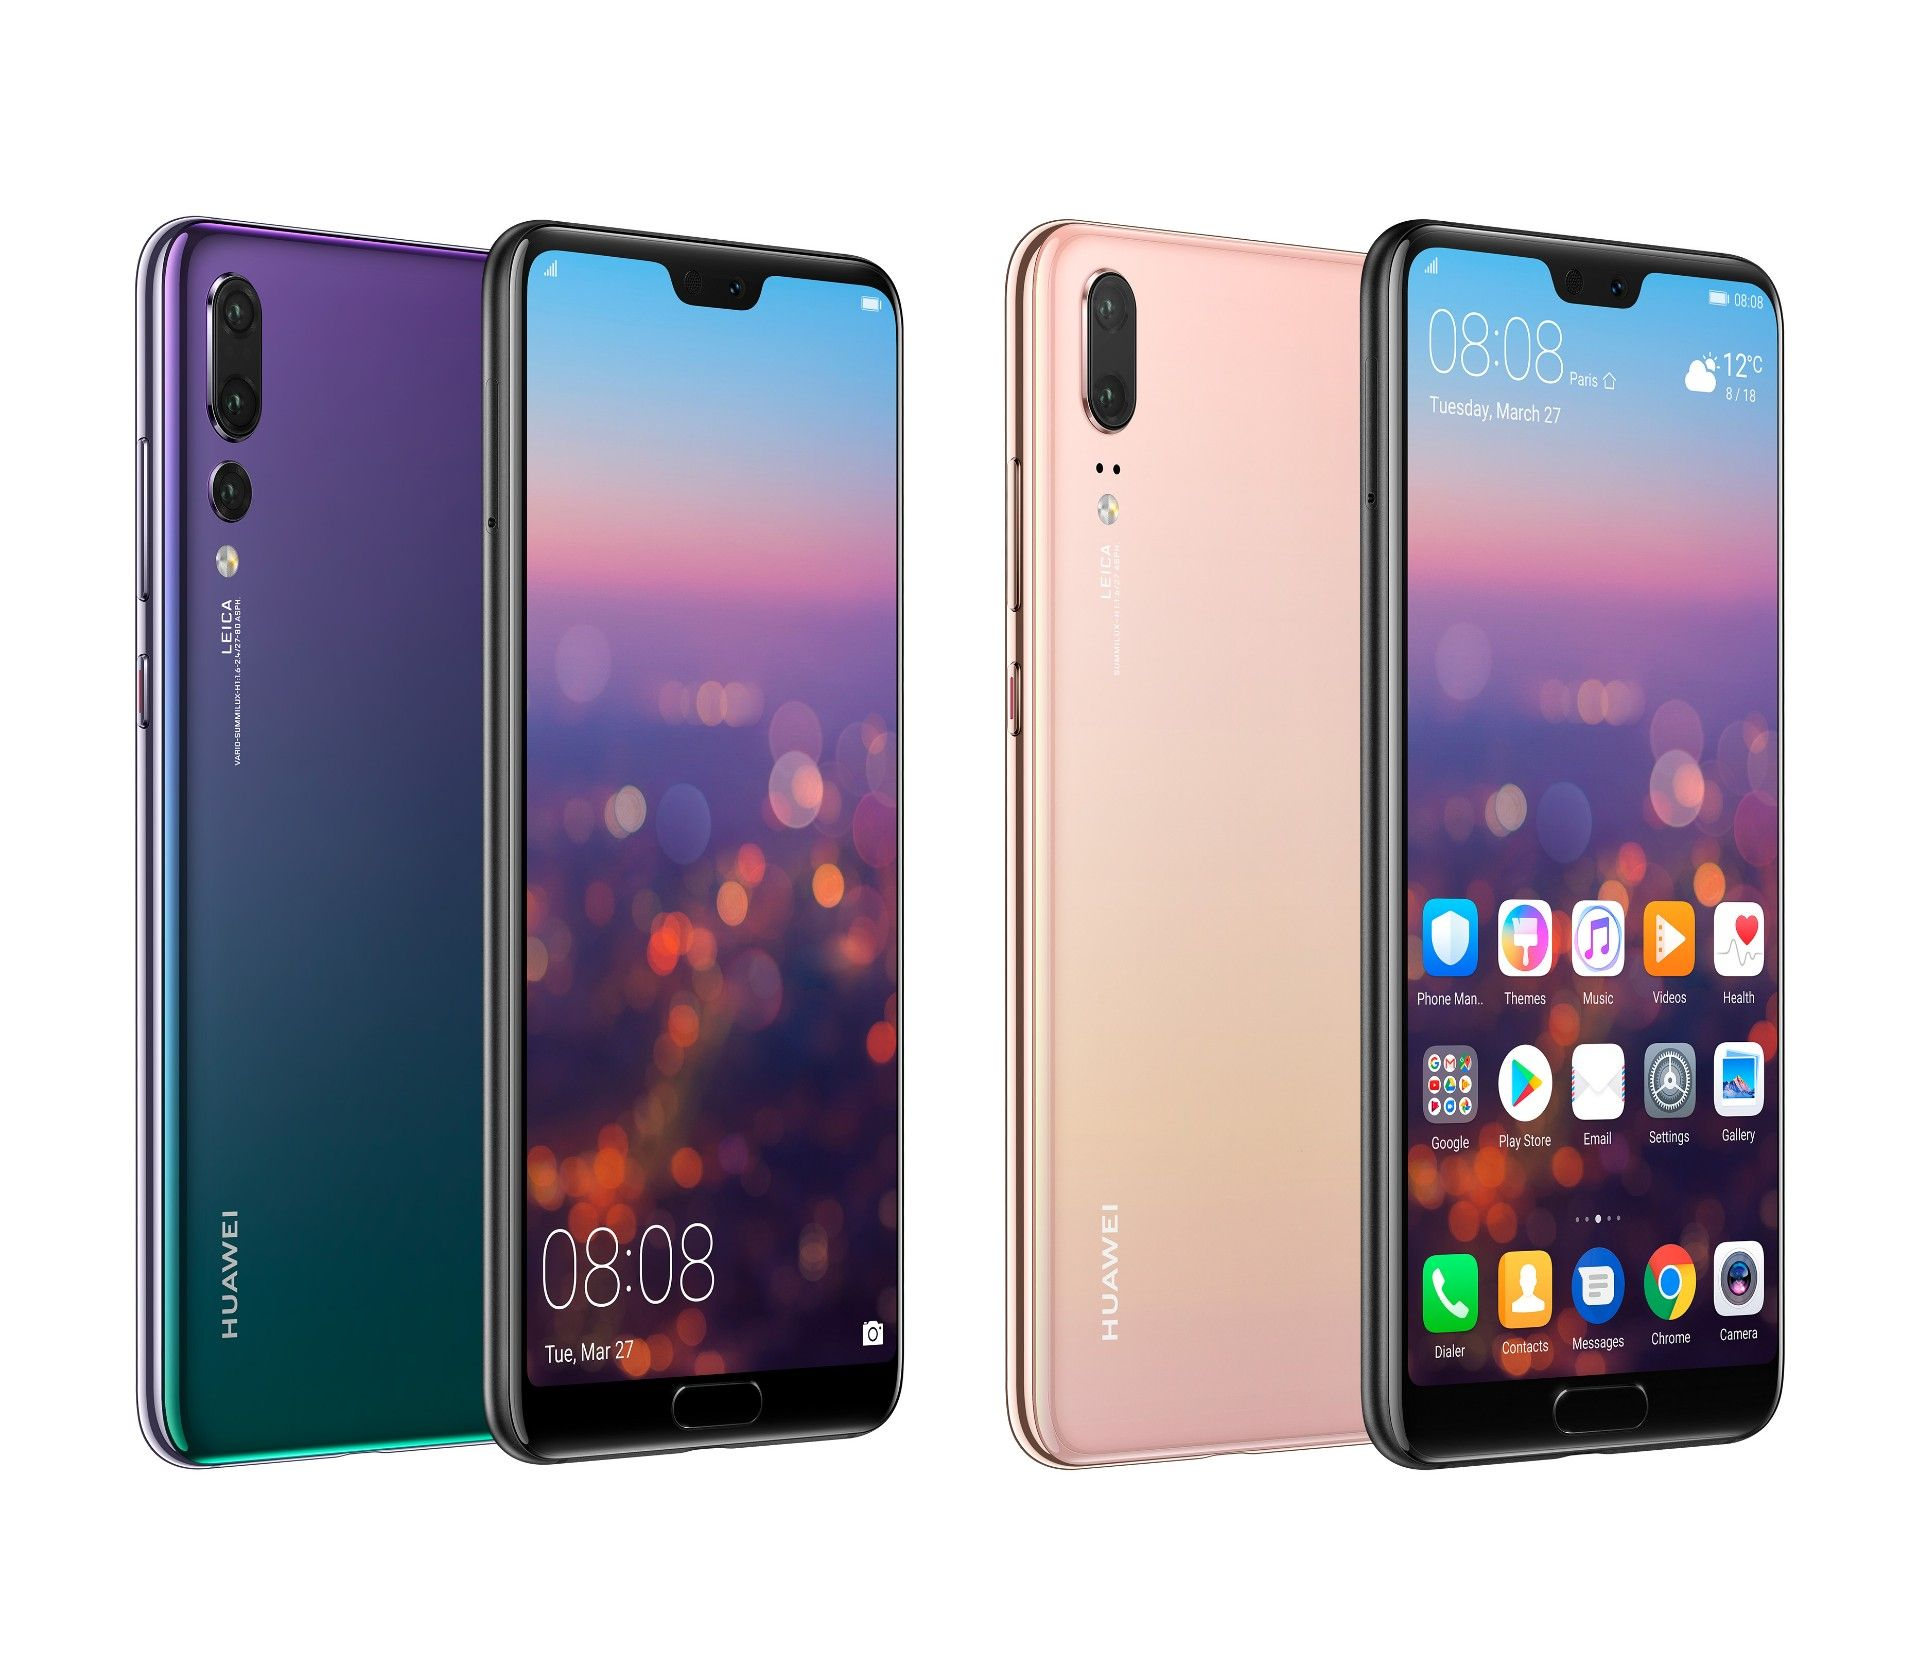 Huawei P20 & P20 Pro Are Now Available At Vodafone UK